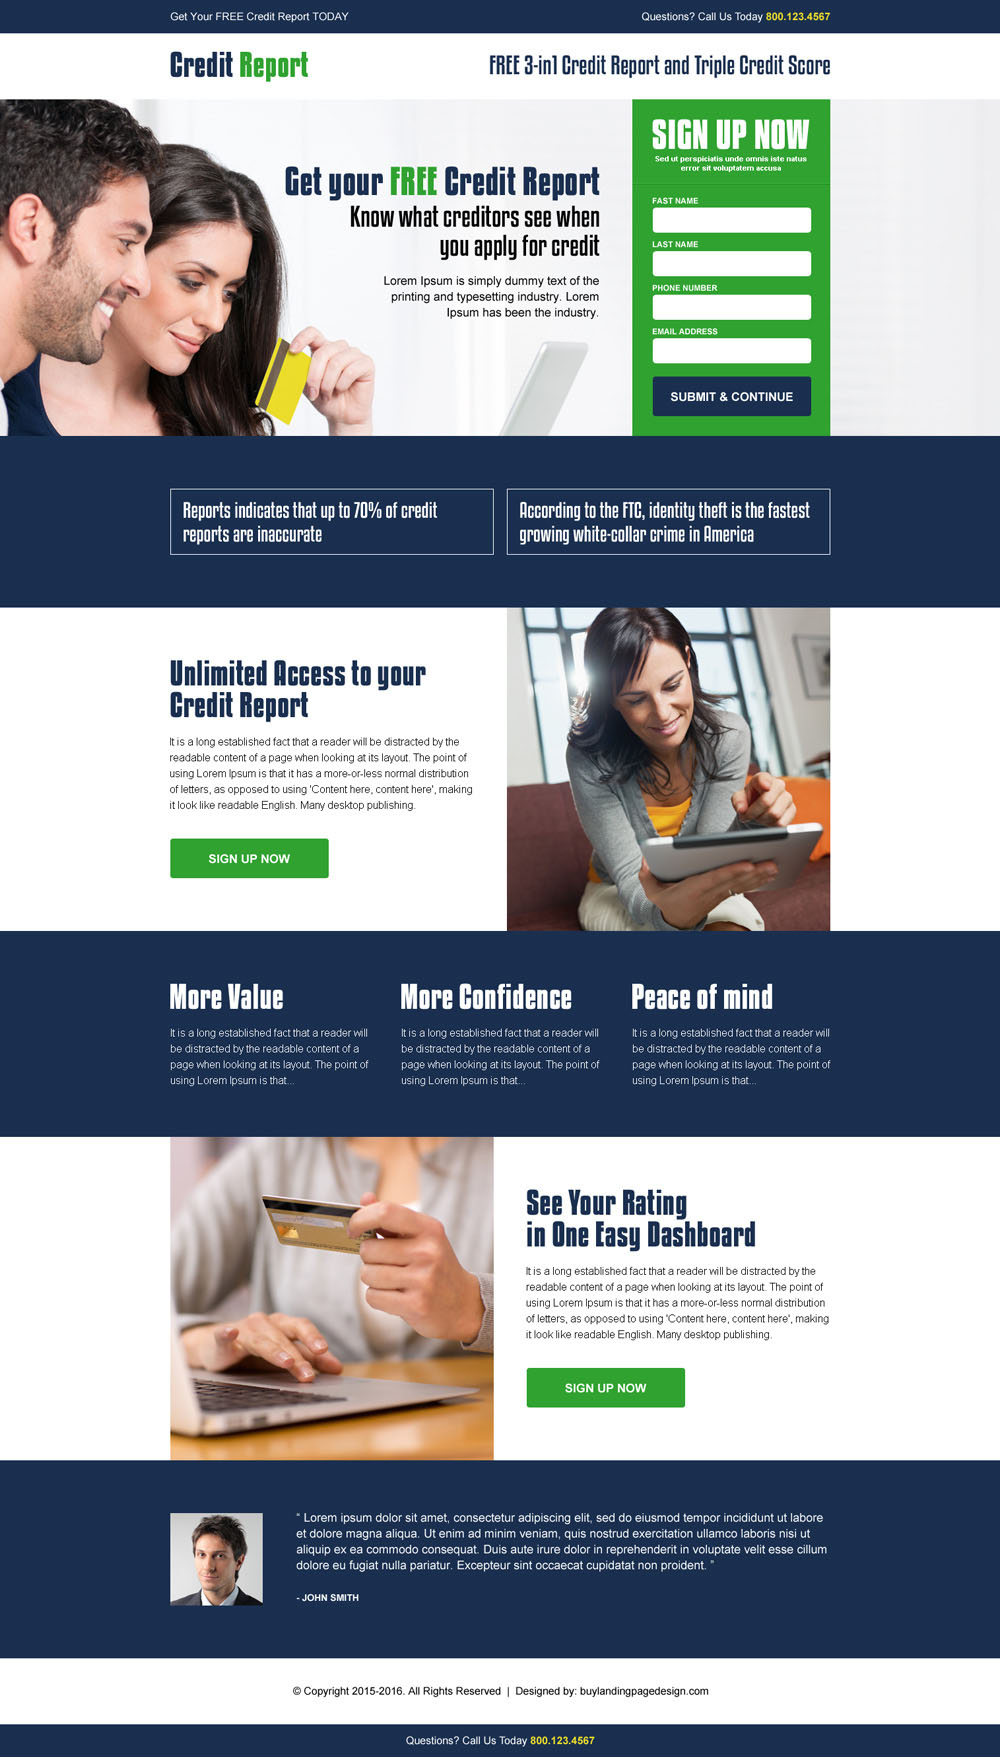 get-your-free-credit-report-and-score-lead-generation-converting-responsive-landing-page-design-001